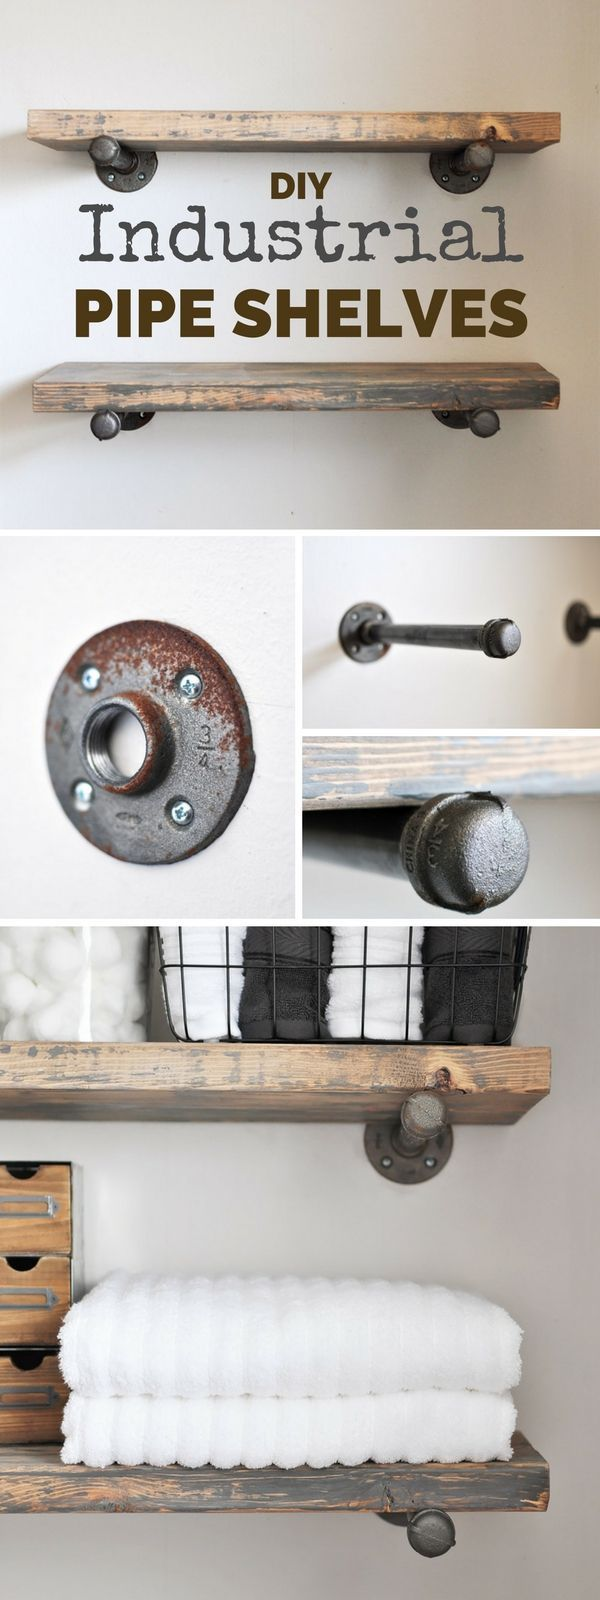 Check out this easy idea on how to build #DIY industrial pipe shelves for #rustic #bathroom #homedecor on a #budget @istandarddesign